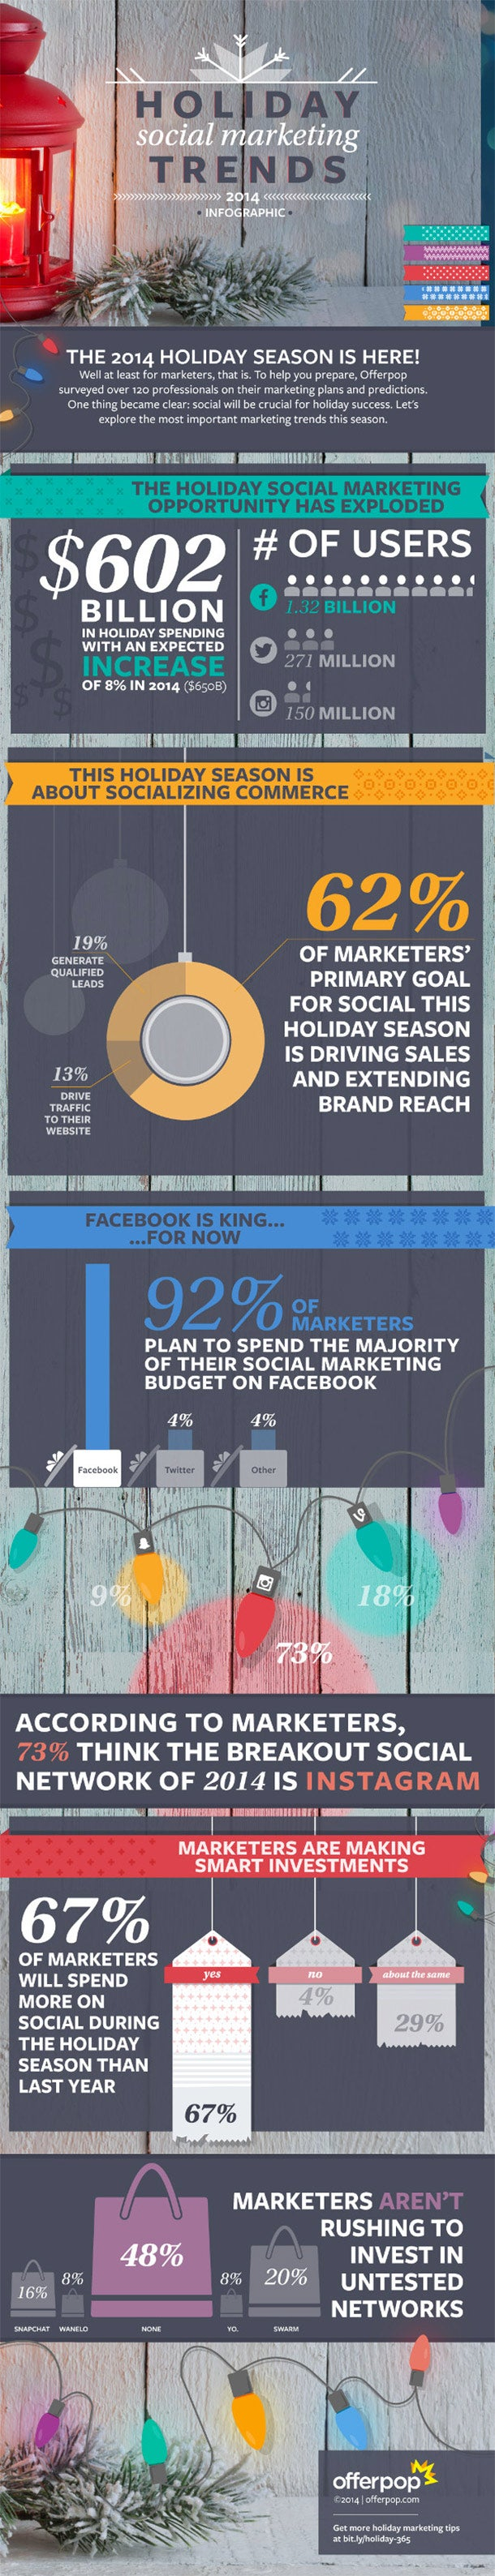 Brands to Spend Big on Social Media This Holiday Season (Infographic)